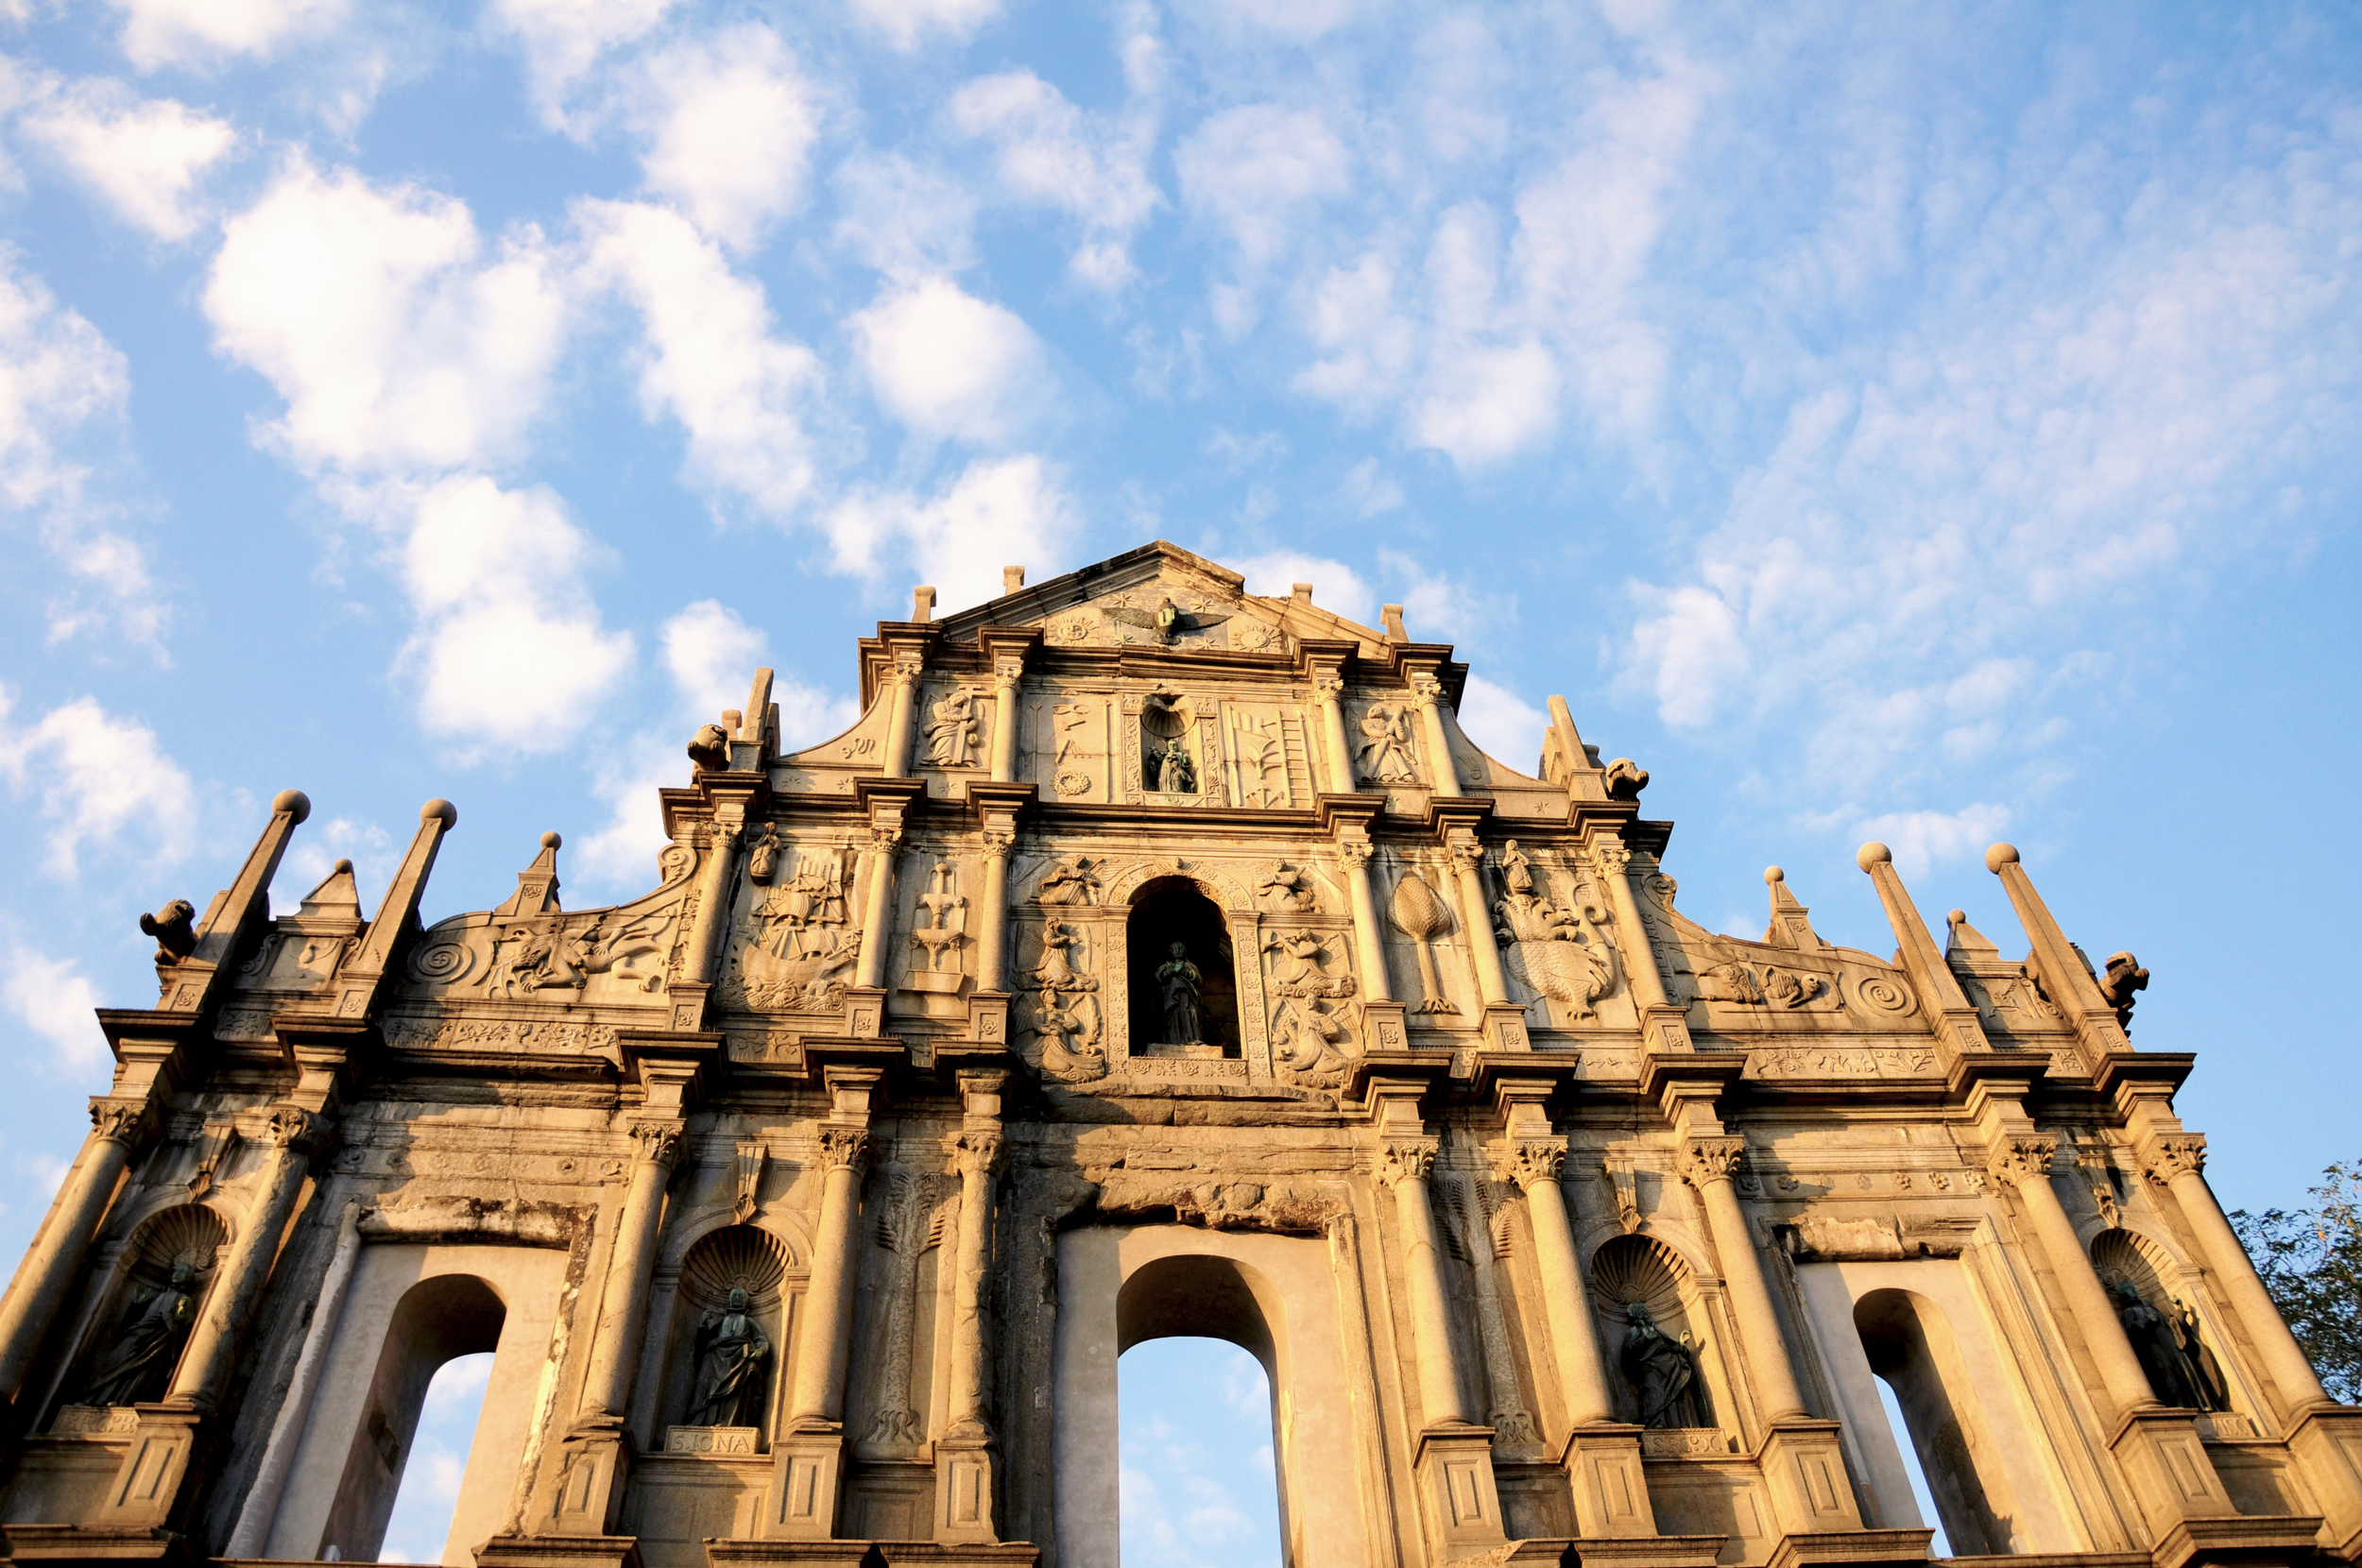 Ruin's of St. Paul's Catheral at Macau